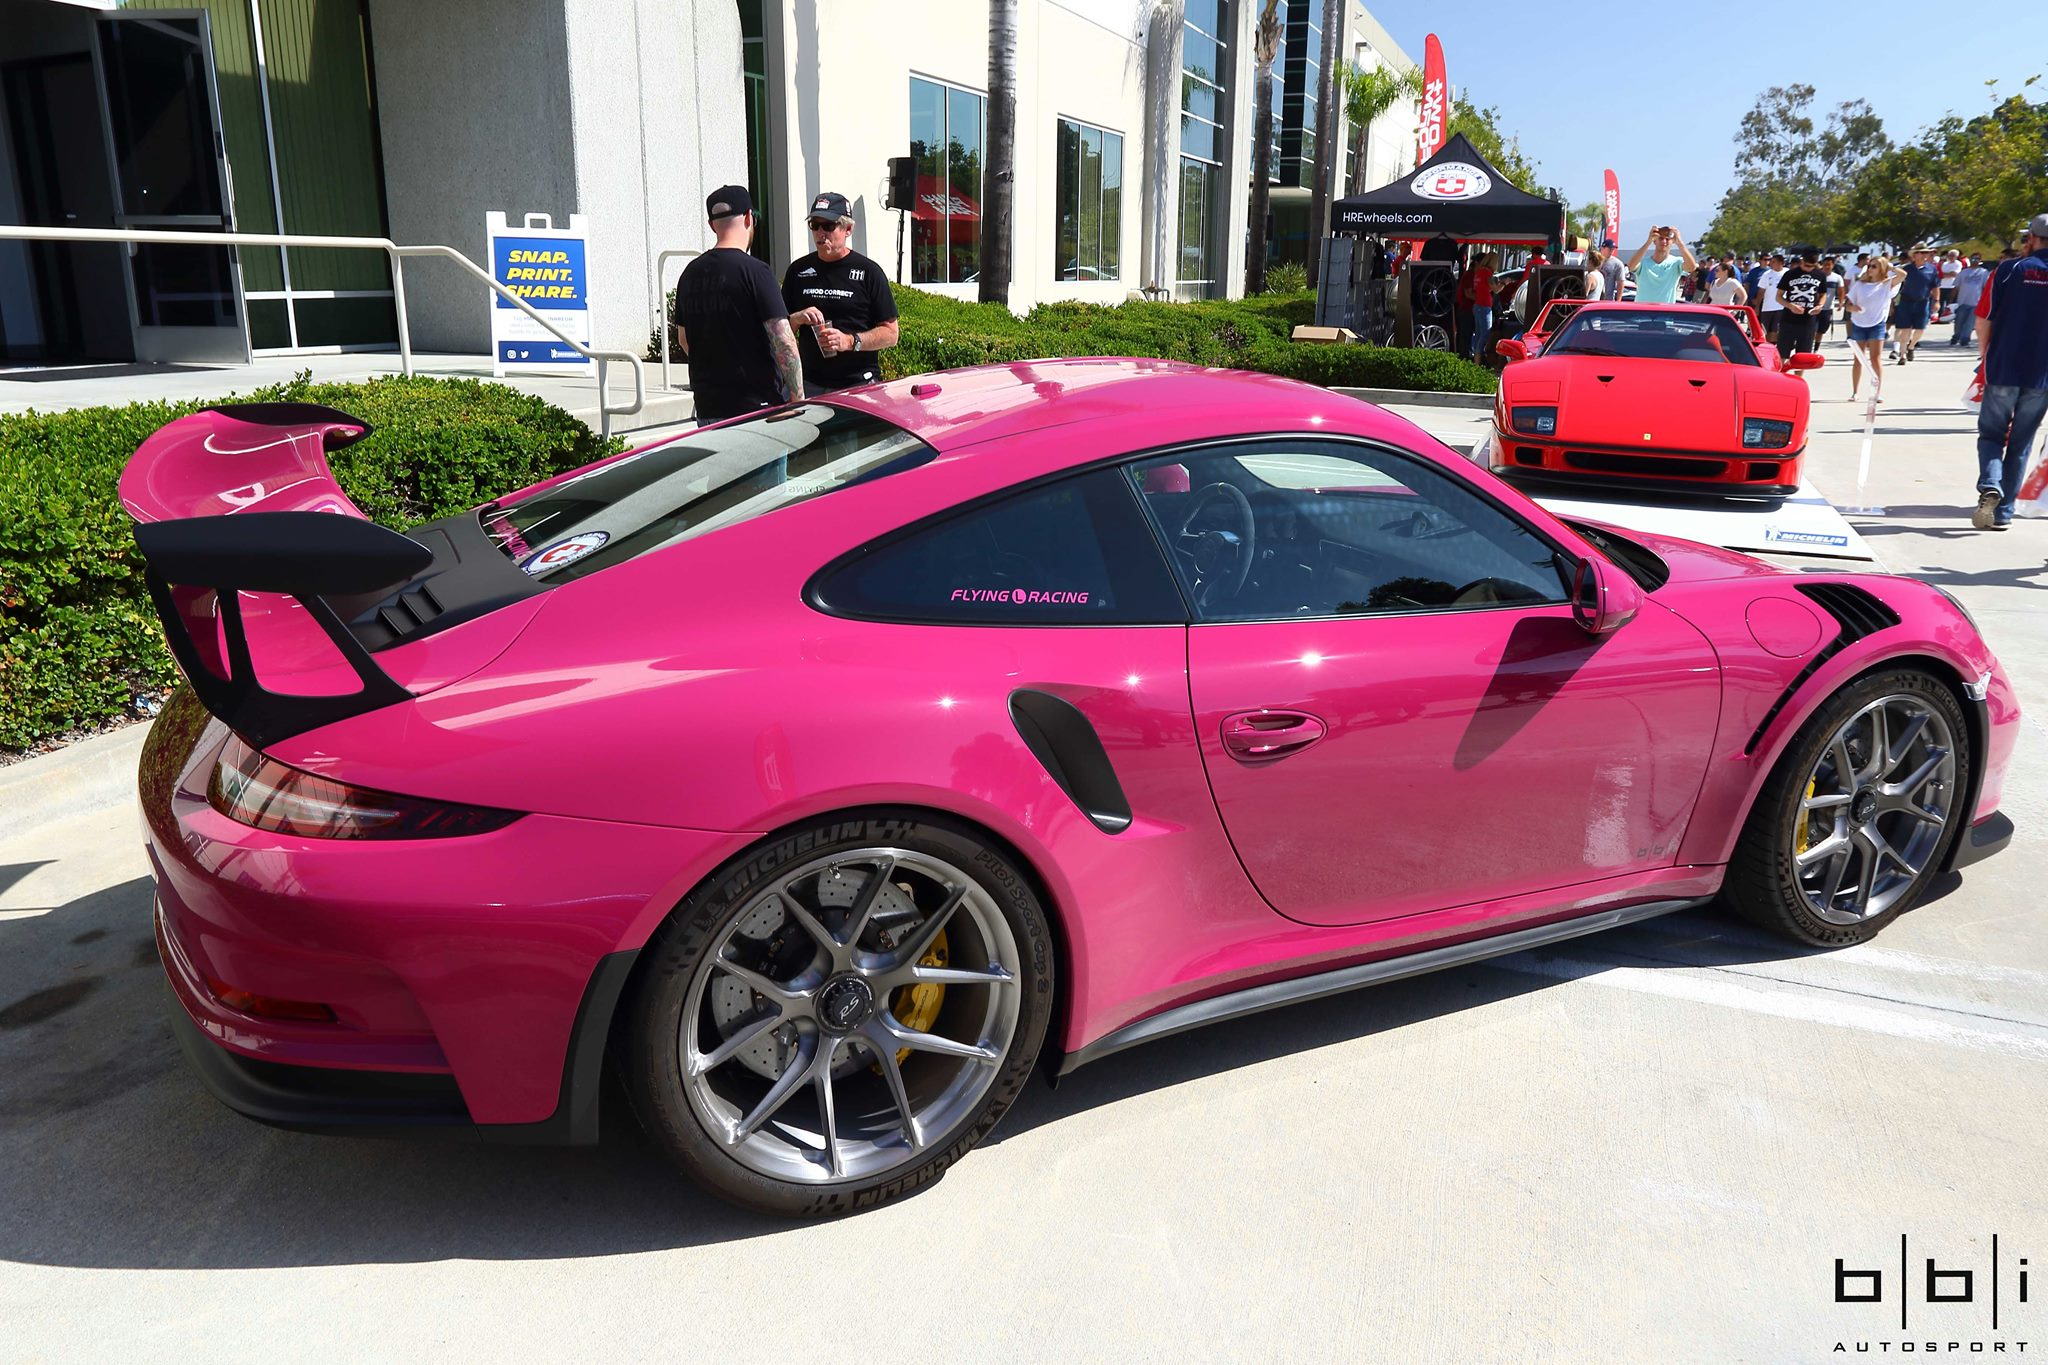 Ruby Star Porsche 911 Gt3 Rs On Display Supercar Report